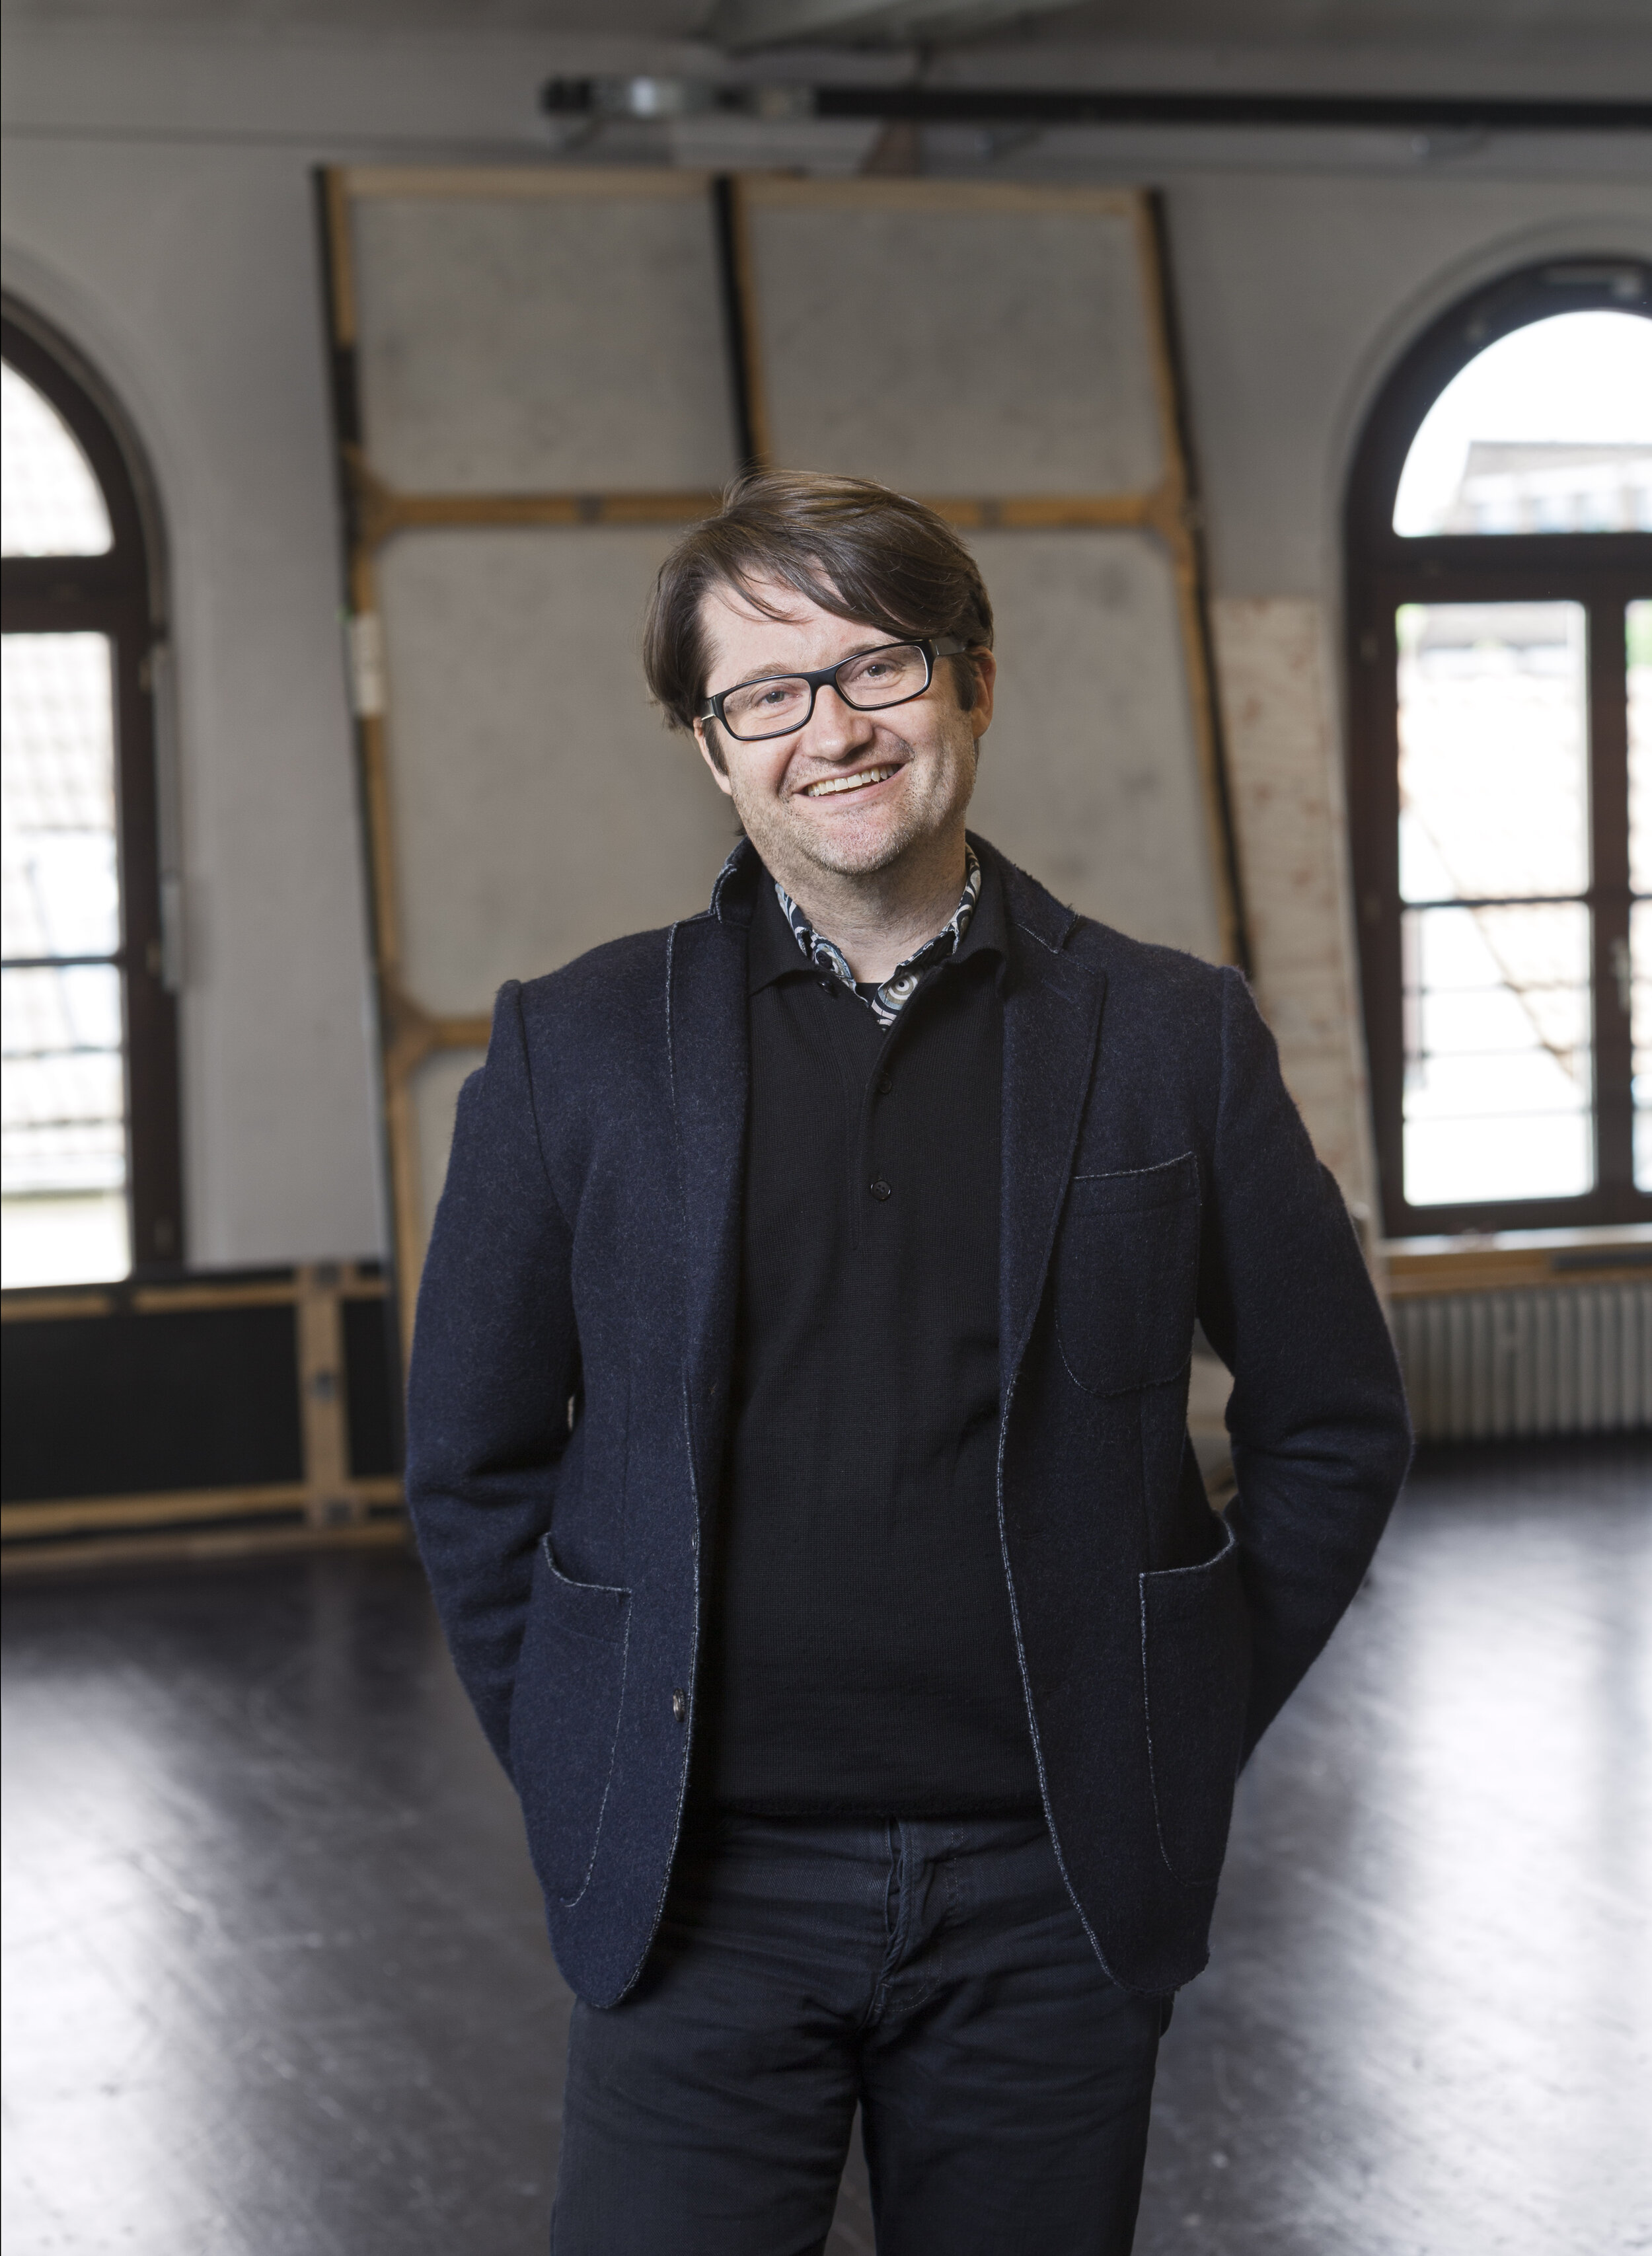 - At the same time, we are pleased to introduce a very competent successor: Gregor Zöllig, Chief Choreographer of the Tanztheater at the Staatstheater Braunschweig, will be the new Artistic Director of Choreography from 2020 onwards. The native Swiss has long been closely linked to the competition as a member of the jury and in 1996 was a prizewinner himself.